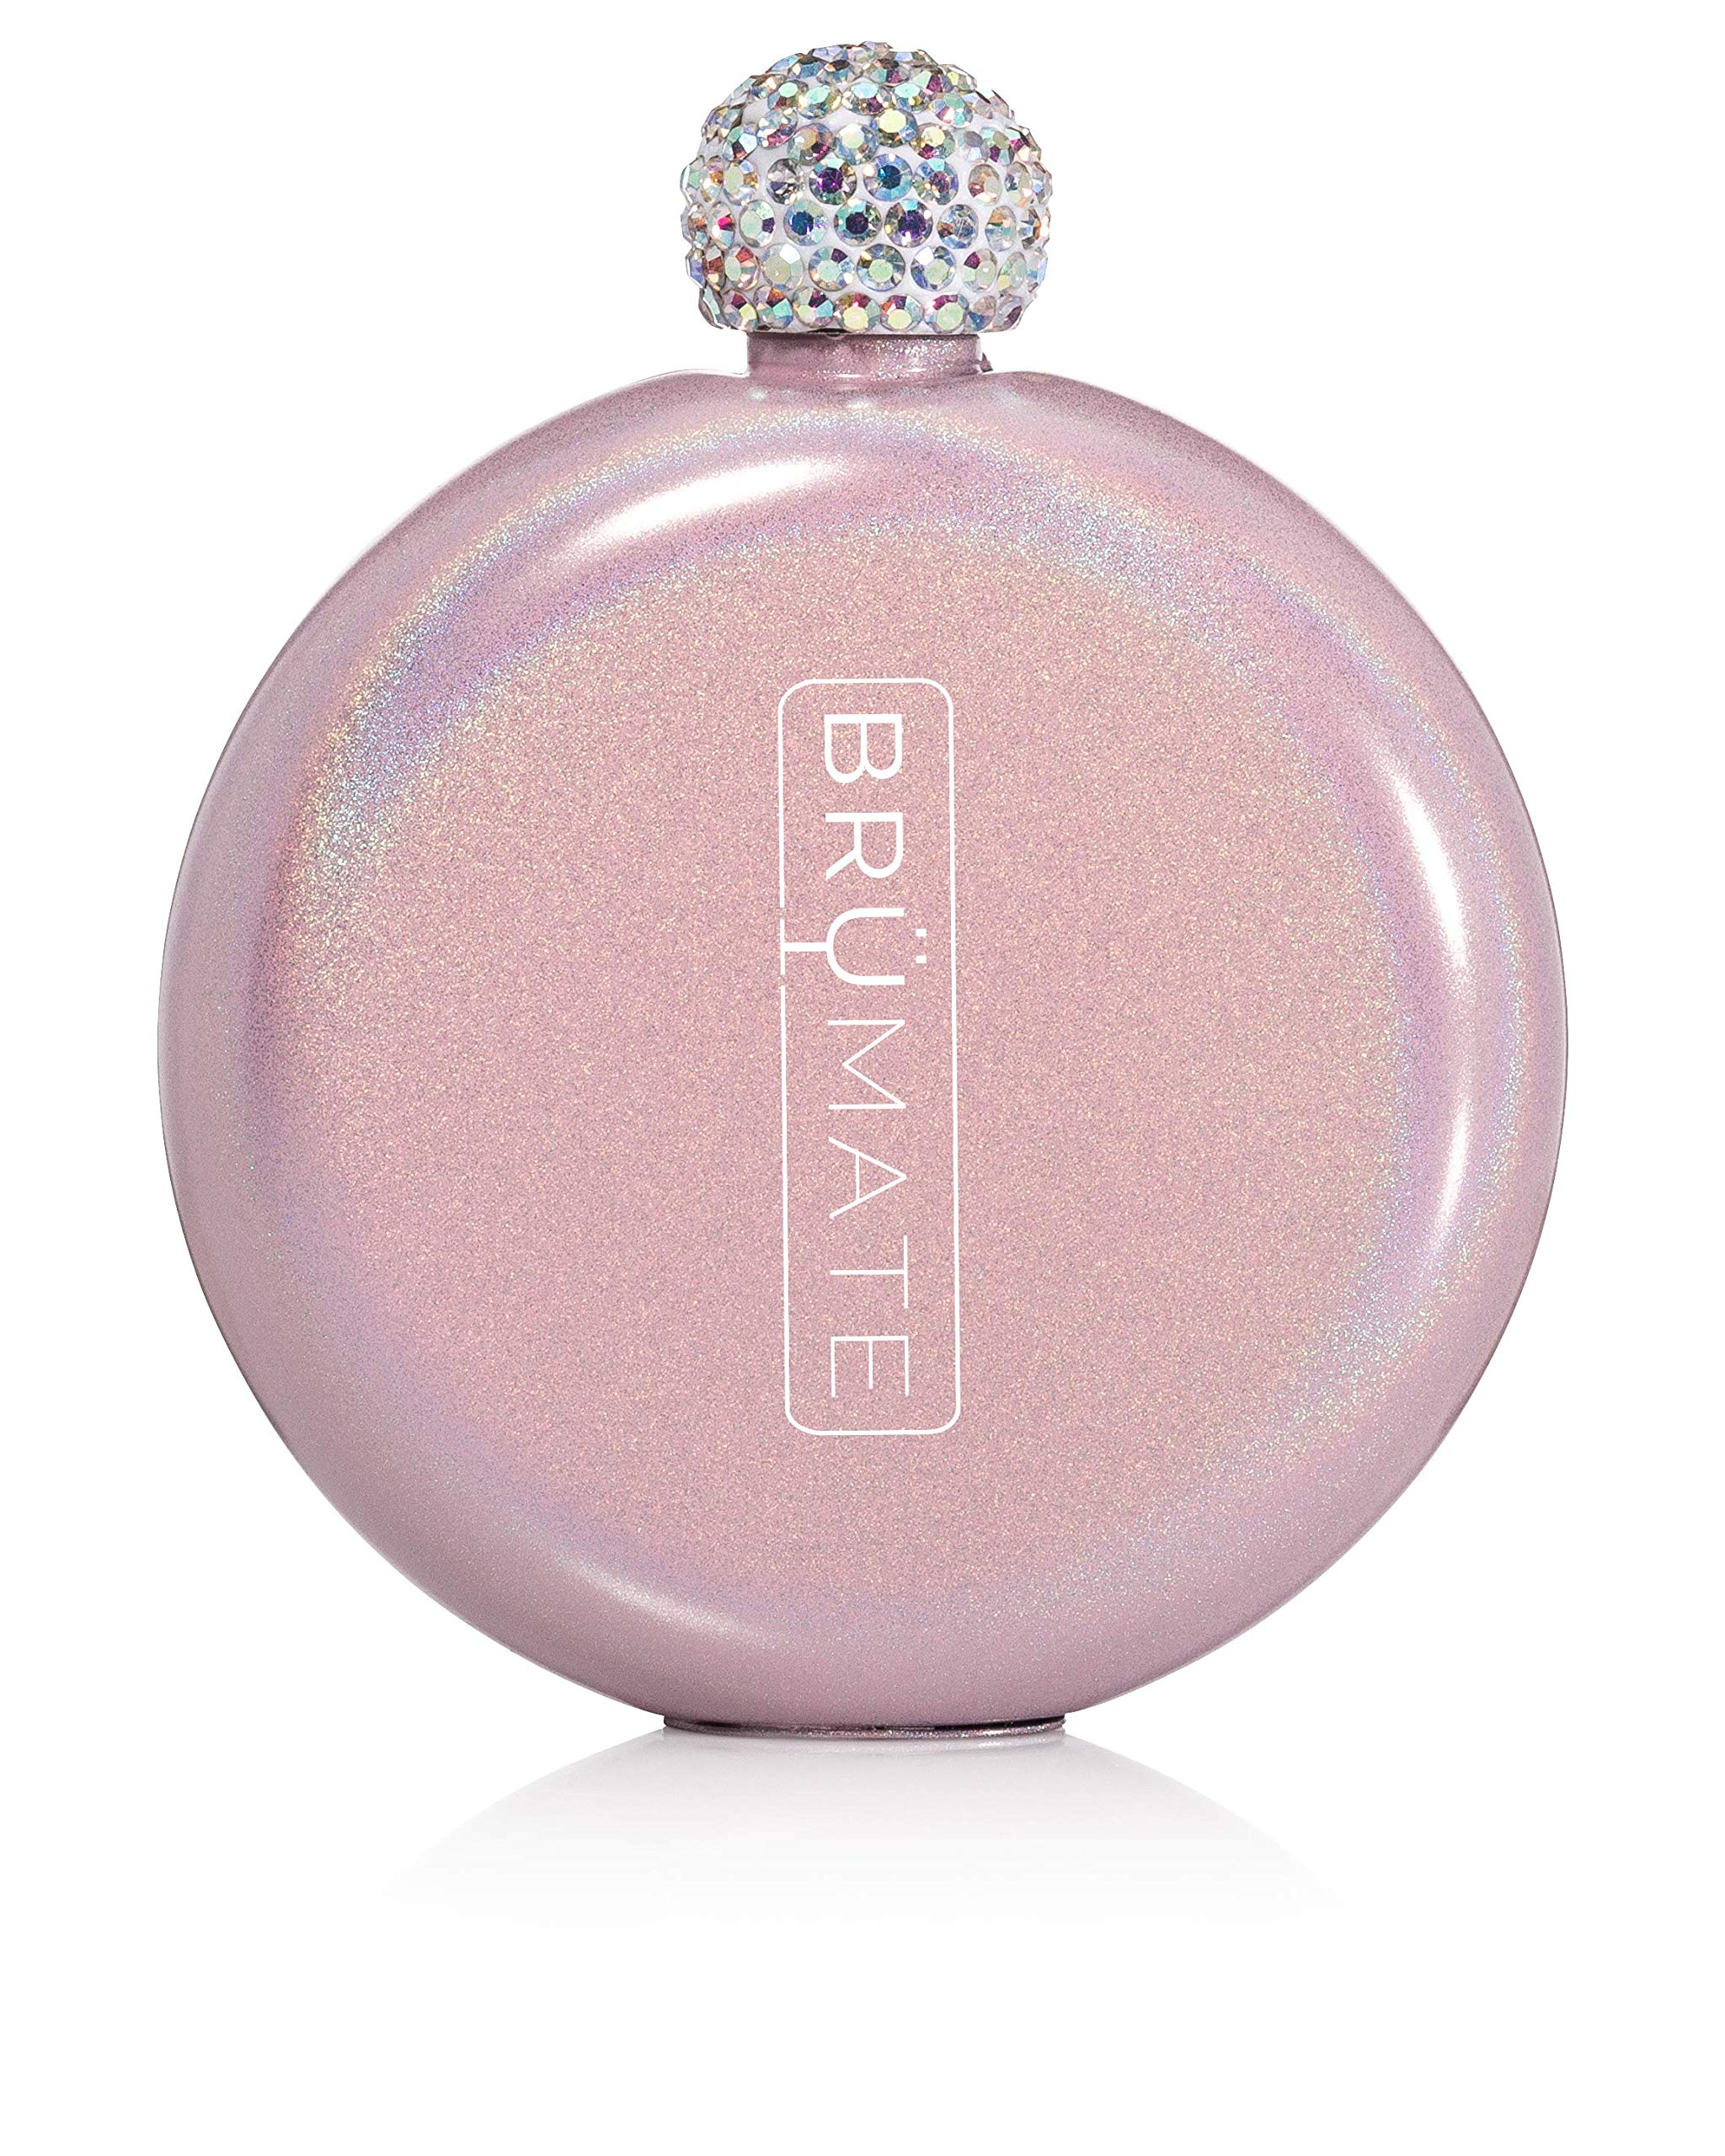 Brümate Holographic Glitter Spirit Flask - 5oz Stainless Steel Pocket & Purse Liquor Flask with Rhinestone Cap - Cute, Girly & Discreet for Drinking - Perfect Gift for Women (Glitter Blush)